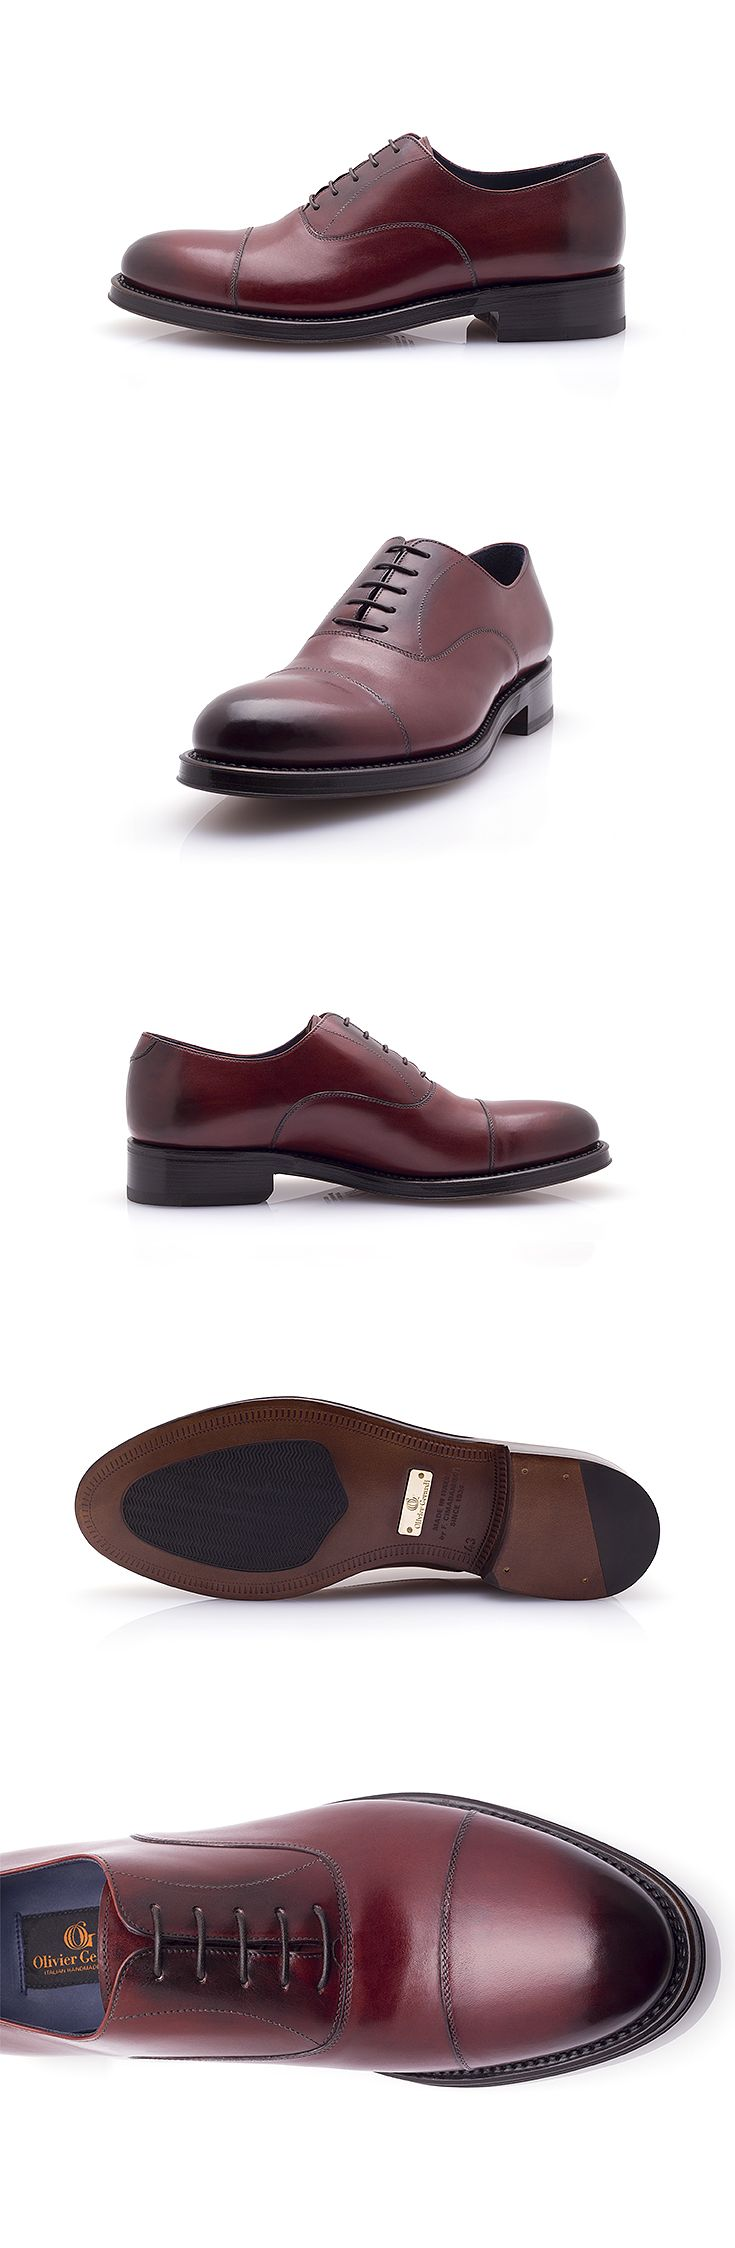 The Paladino is a classic Oxford shoe, ideal for your formal and elegant outfits. However, the subtle nuances of its patina will make you stand out from the crowd in a discreet but indisputable way. #shoes #oxford #goodyear #luxury #burgundy